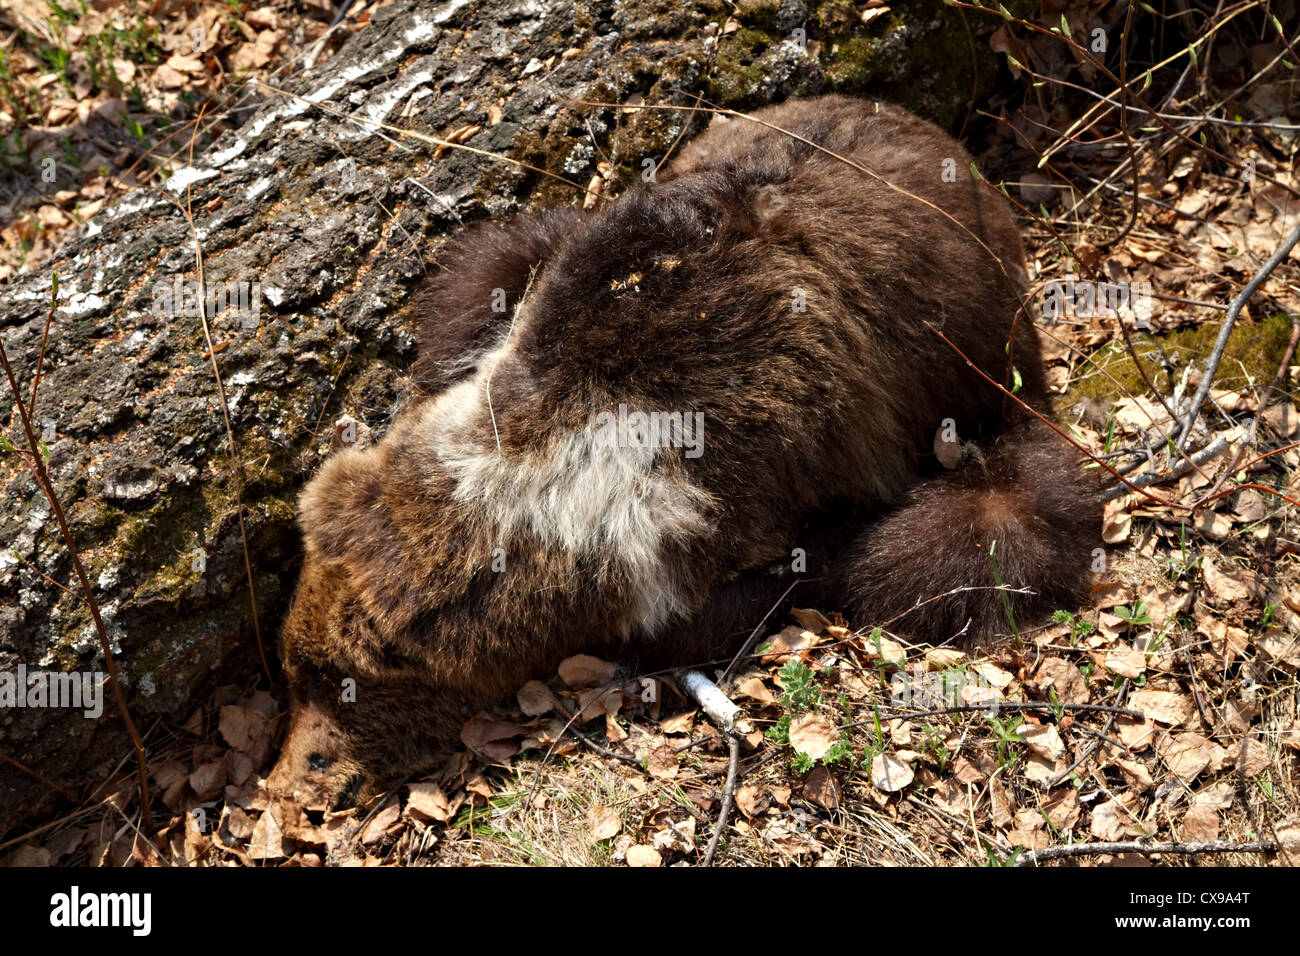 Dead bear cub which died of starvation in spring without female bear. Southern Ural mountains. Alabiya ridge. - Stock Image